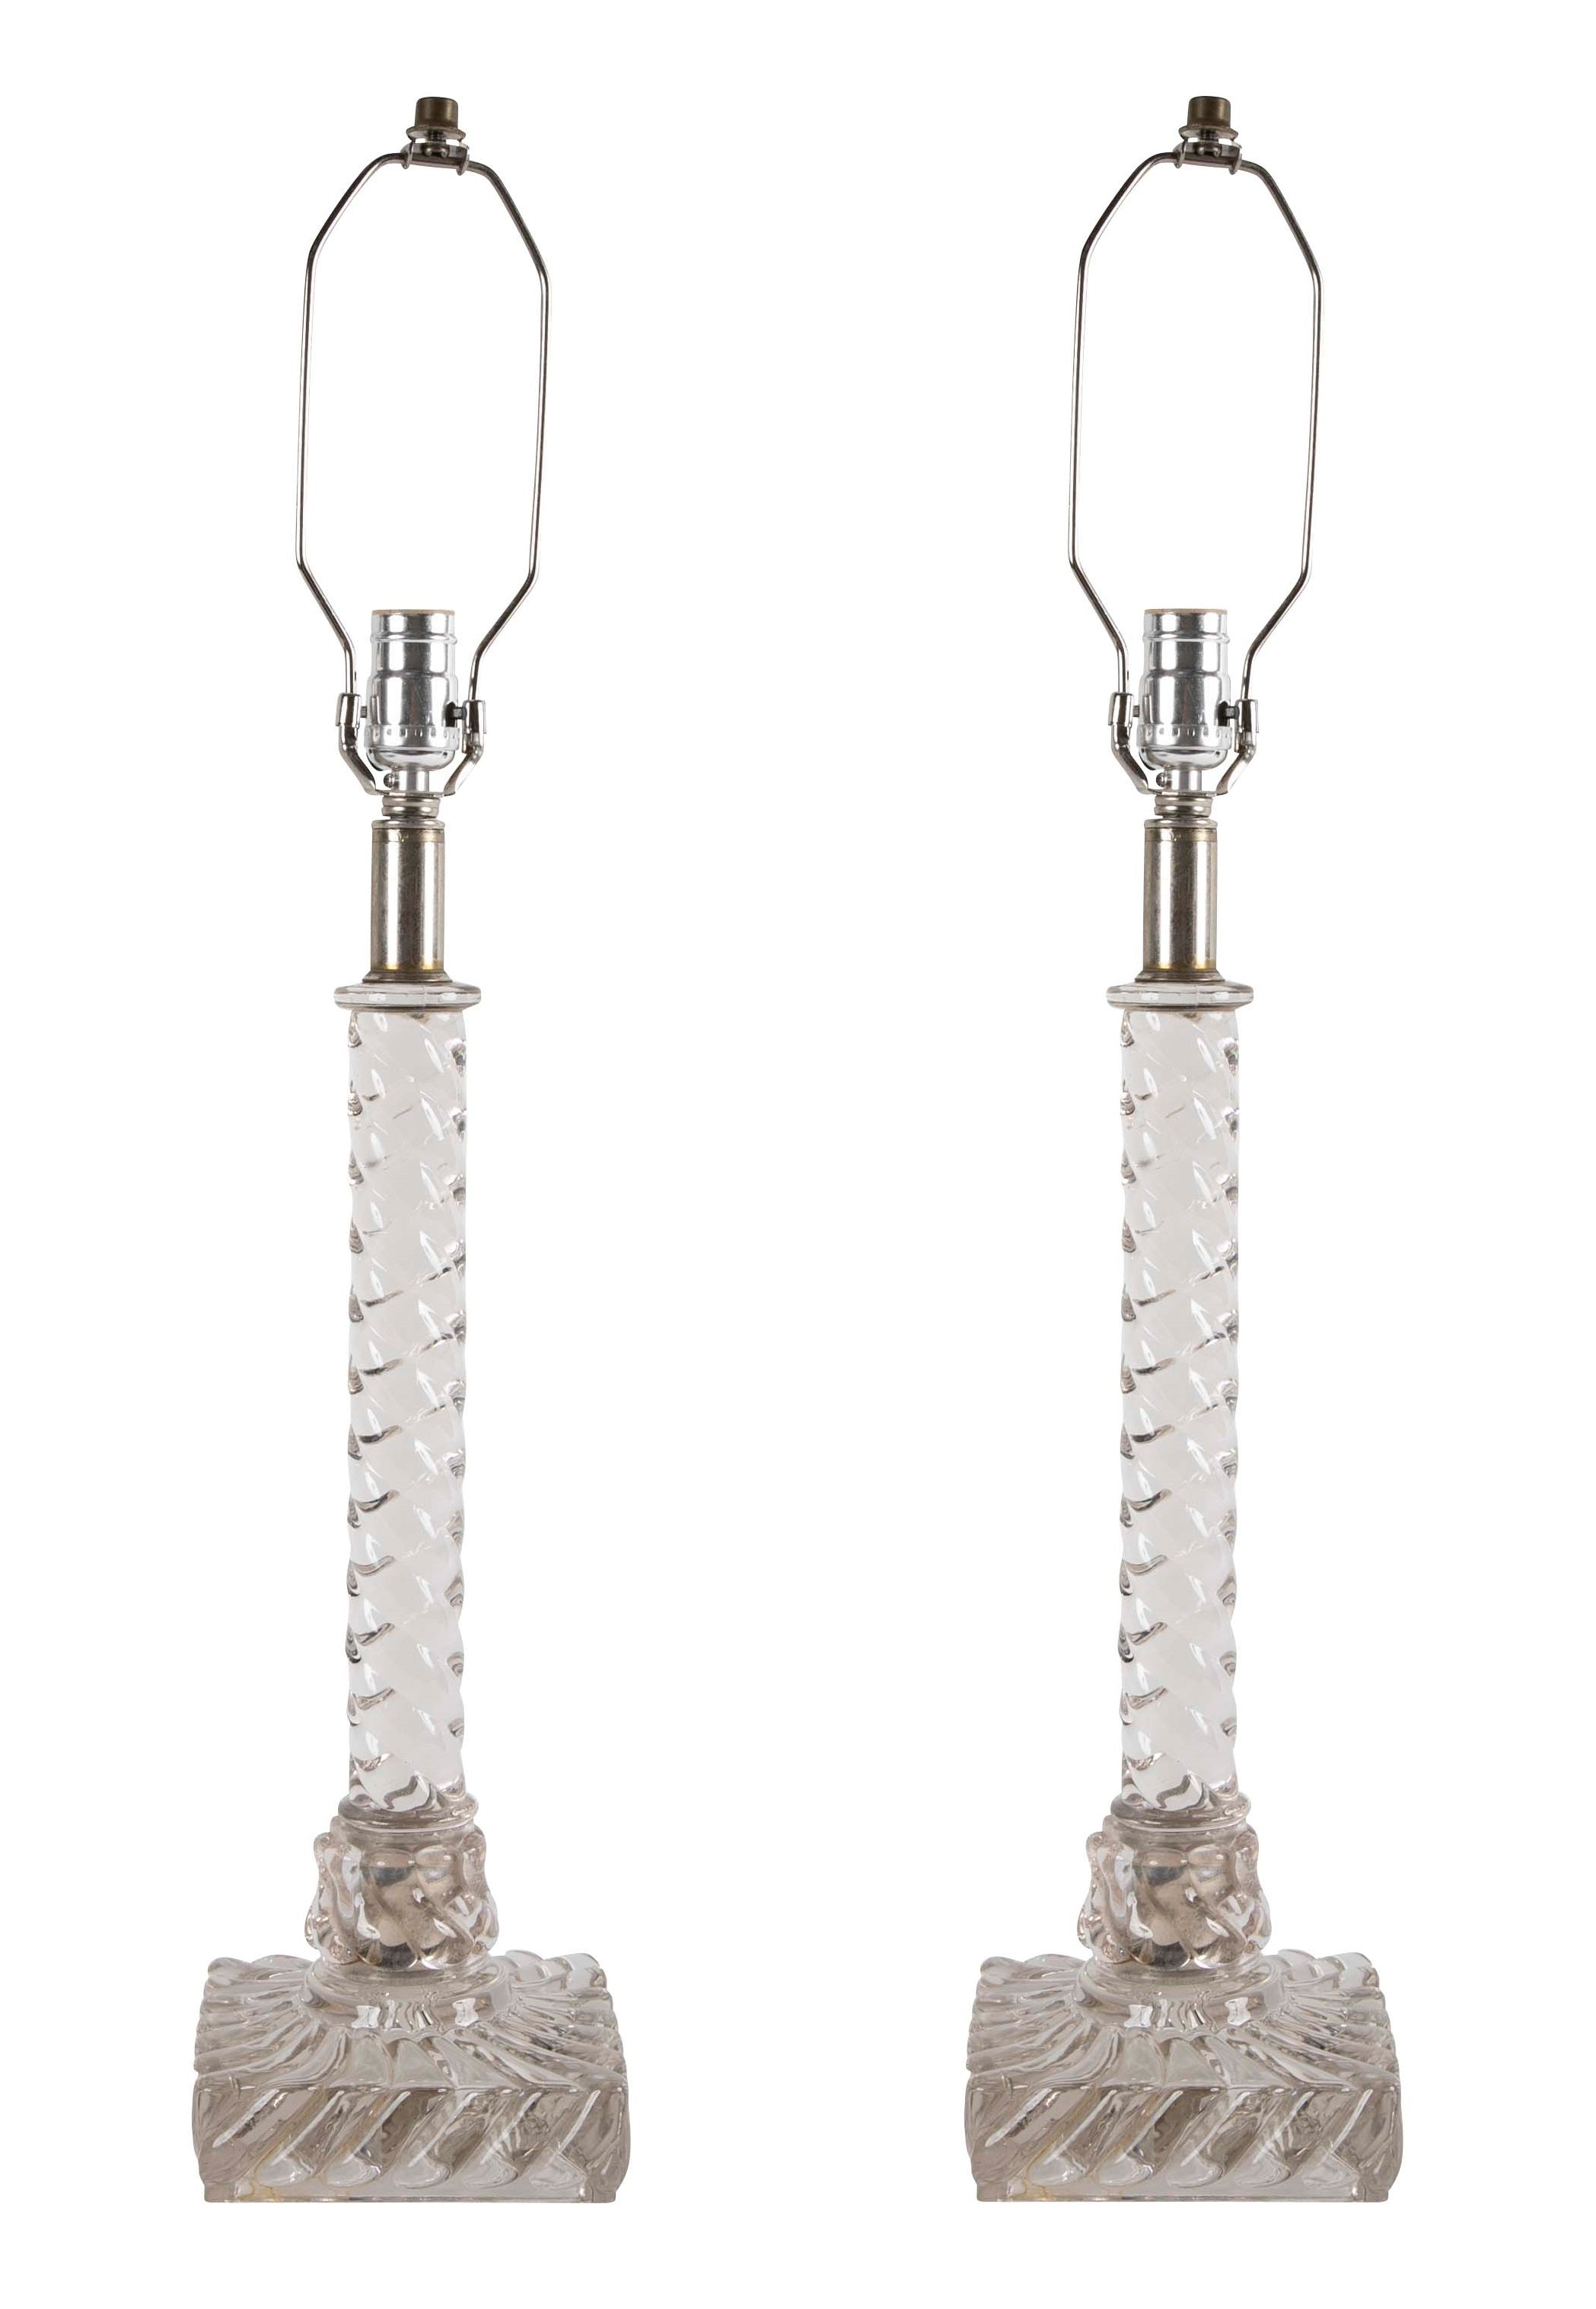 Pair of Baccarat Column Twist Lamps